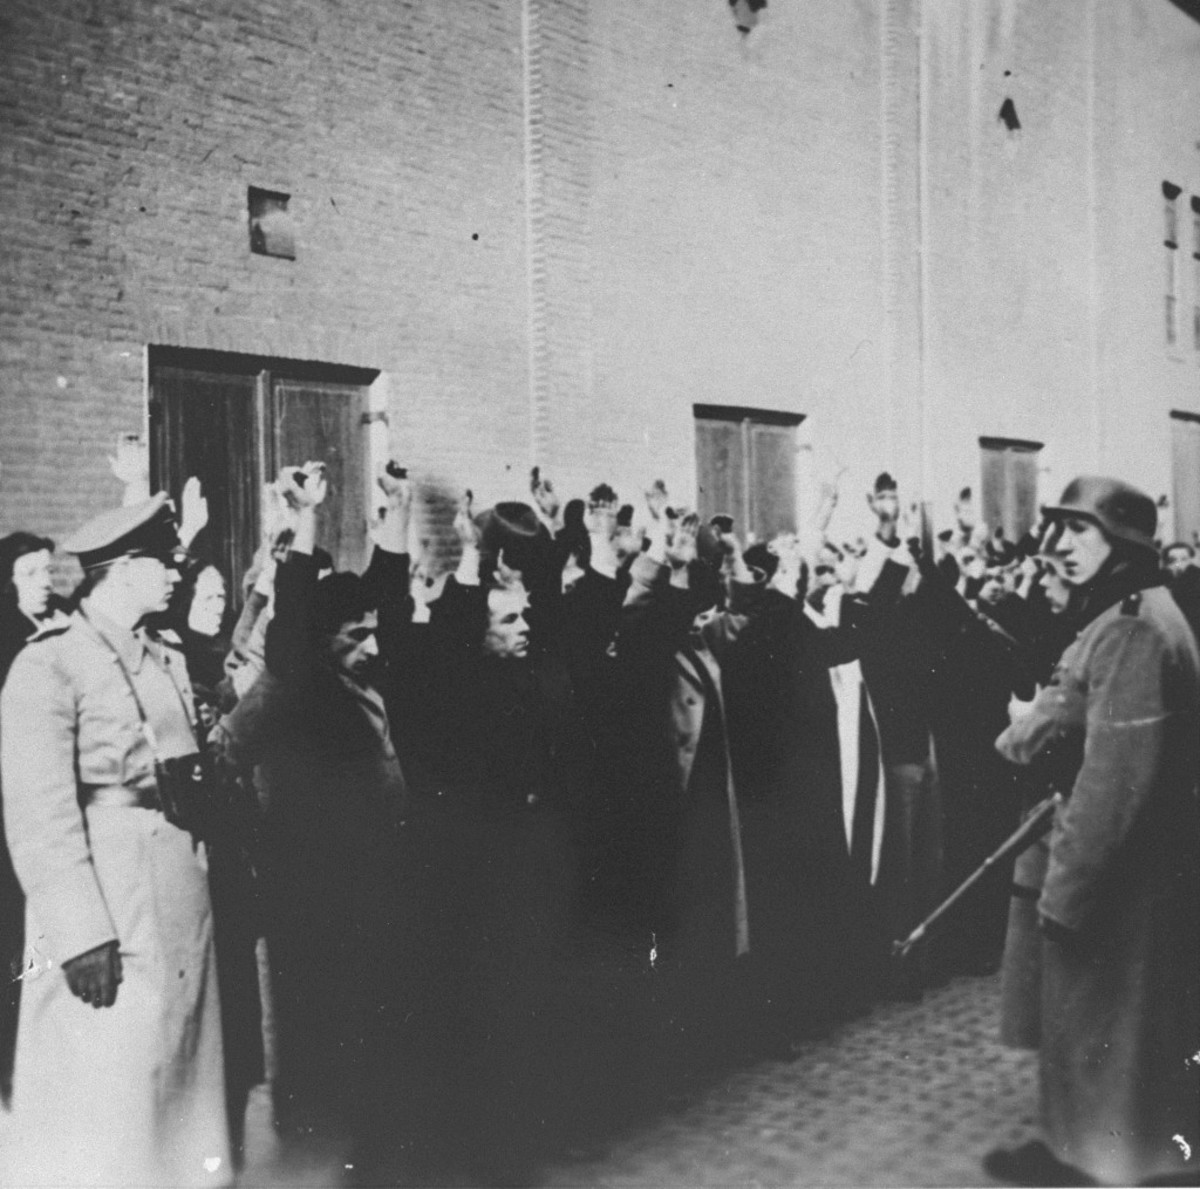 Dutch Jews lined up to be headed to concentration camps.